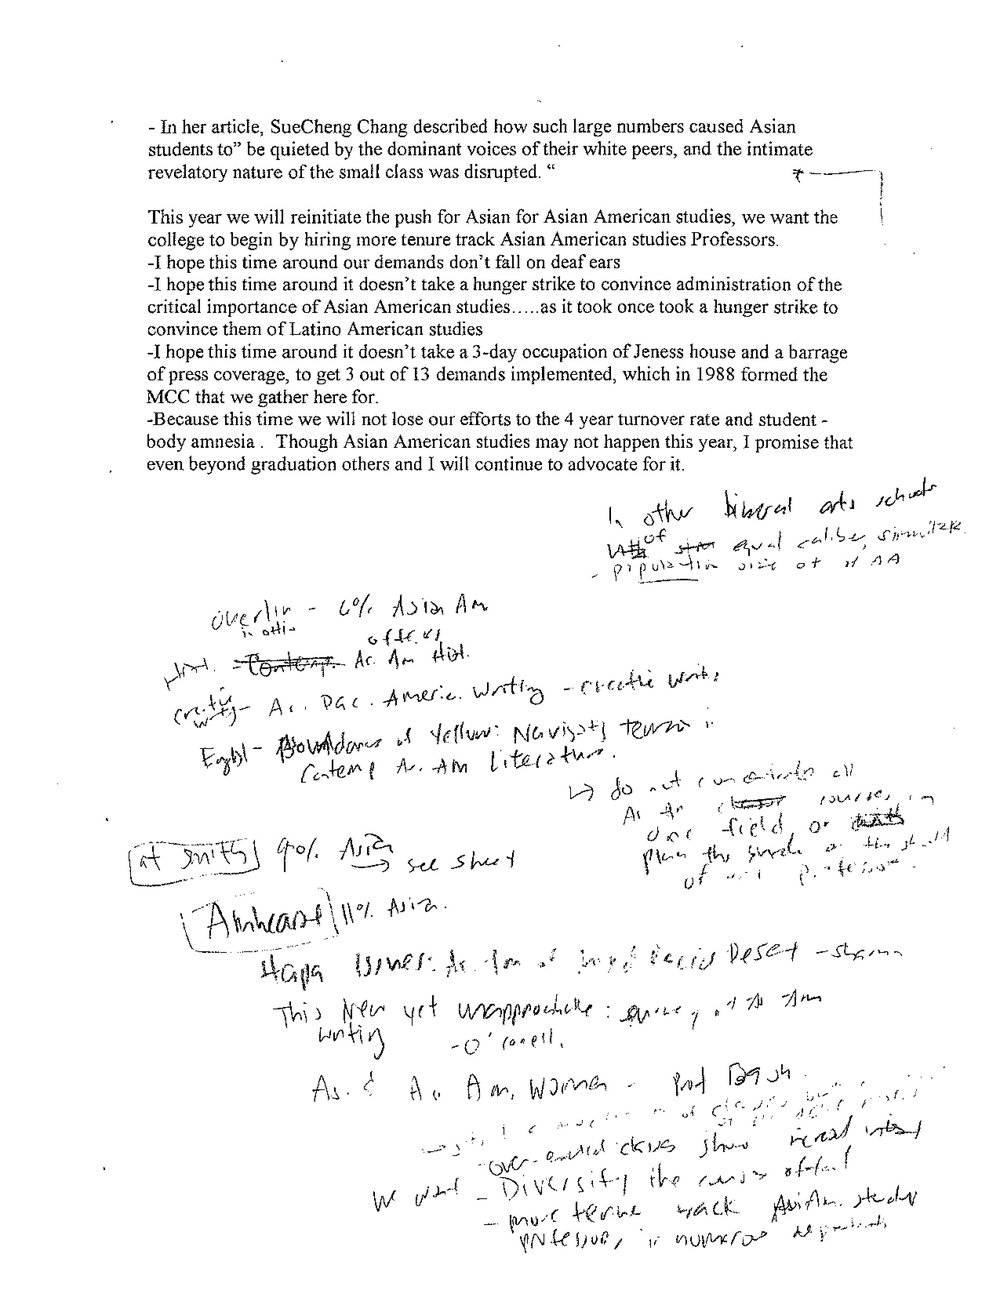 Speech at Ethnic Studies Panel 2004 copy-page-002.jpg